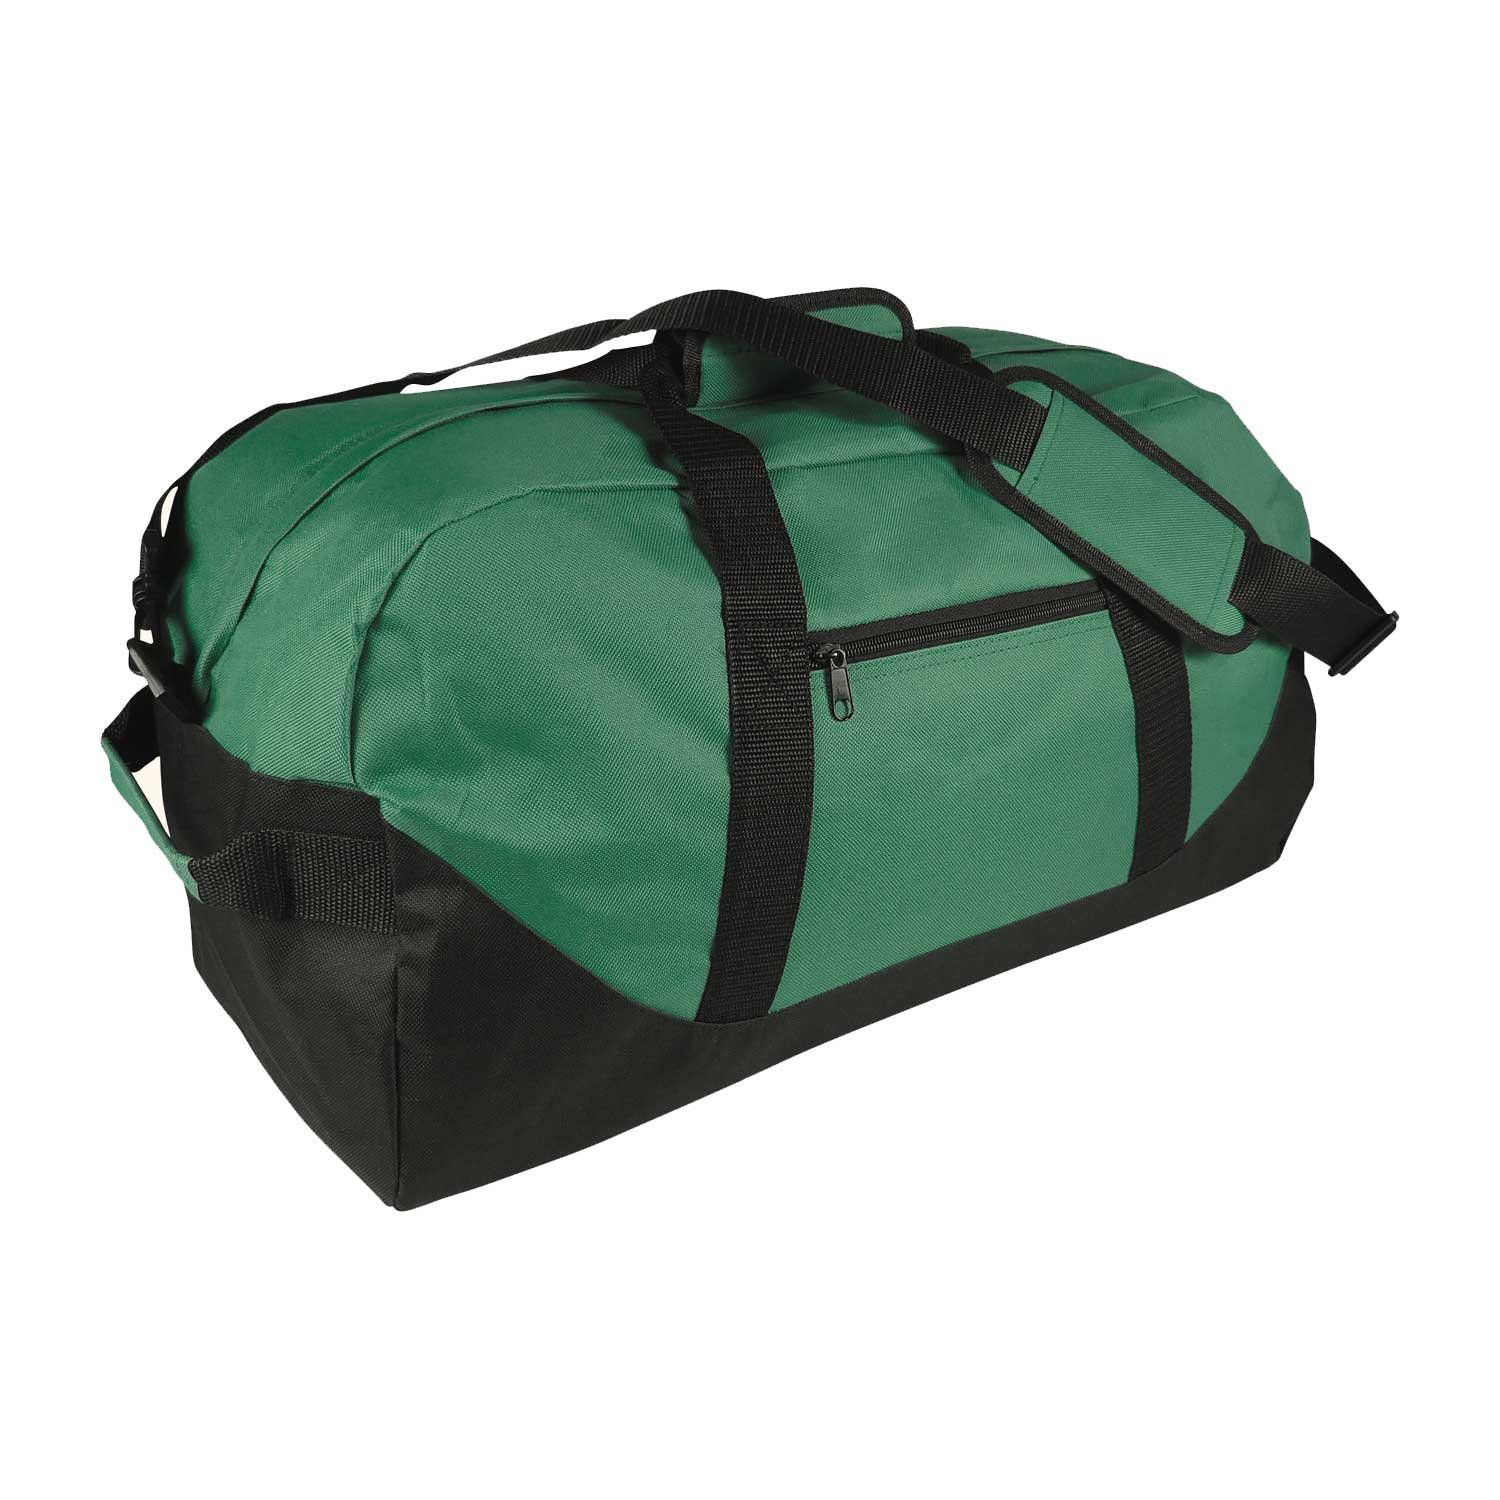 21'' Large Duffle Bag with Adjustable Strap (Dark Green)